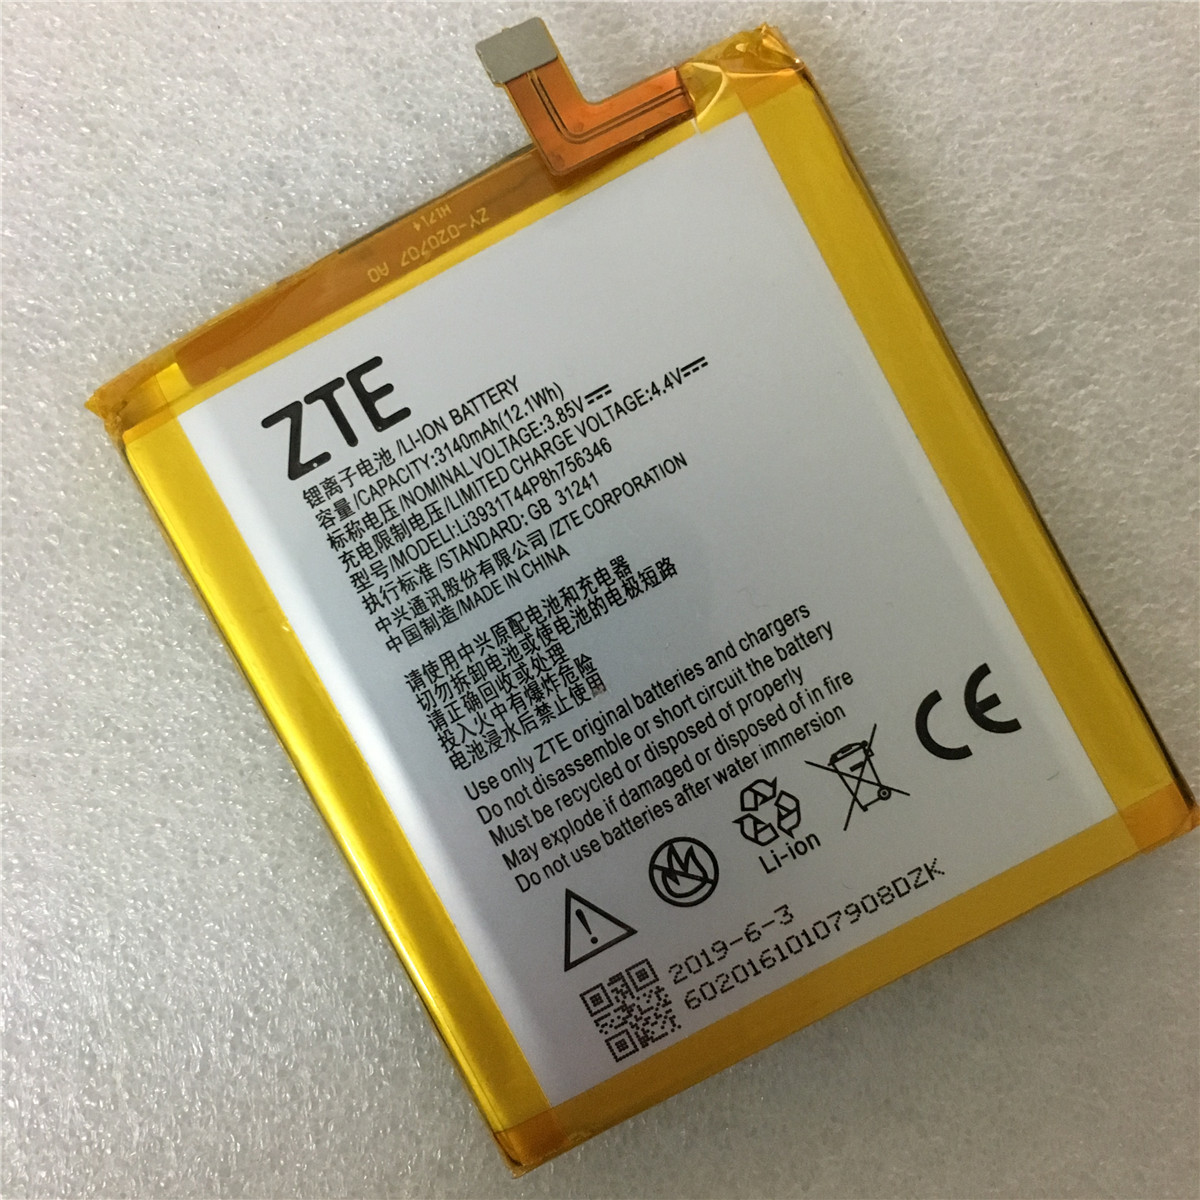 2019 Original New LI3931T44P8H756346 Battery For ZTE Axon 7 5.5inch A2017 Battery 3140mAh With Tracking Number